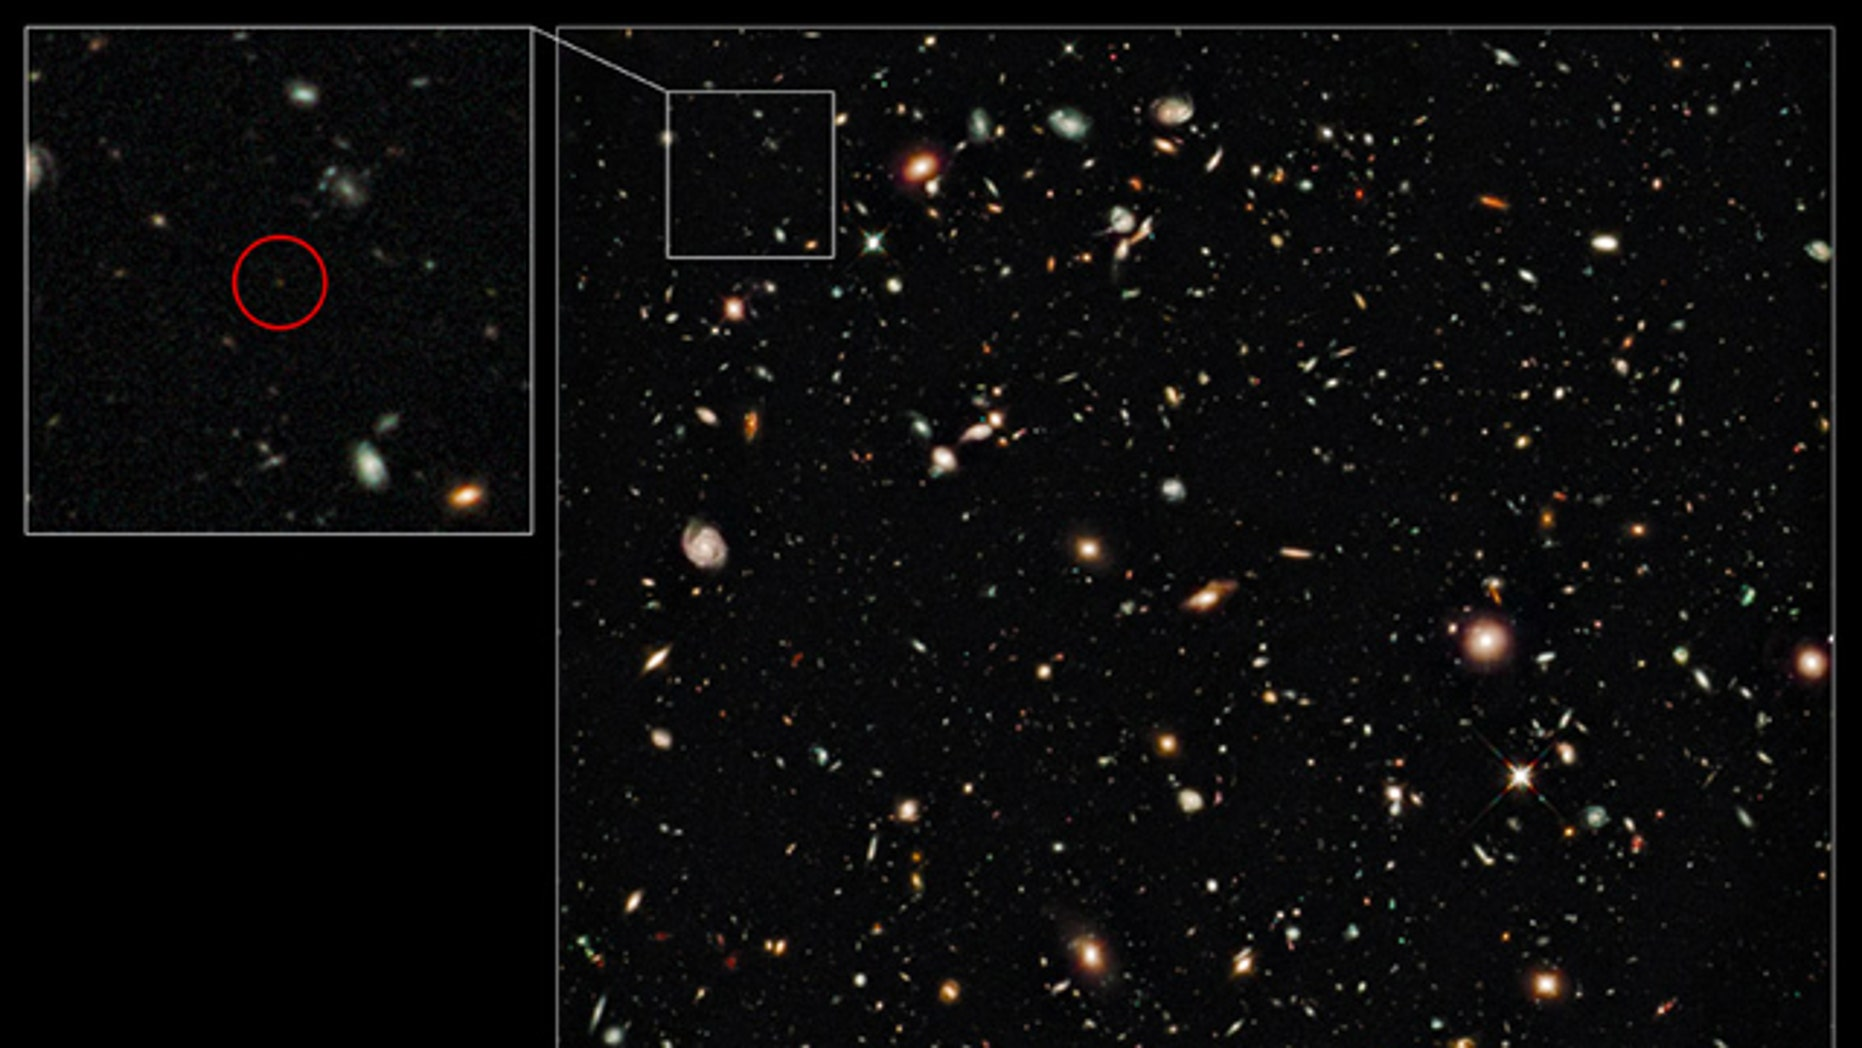 Astronomers using ESO's Very Large Telescope (VLT) have now measured the distance to the most distant galaxy so far, UDFy-38135539 (the faint object shown in the excerpt on the left). It is seen here in a Hubble Space Telescope photo and is about 13.1 billion light-years away.